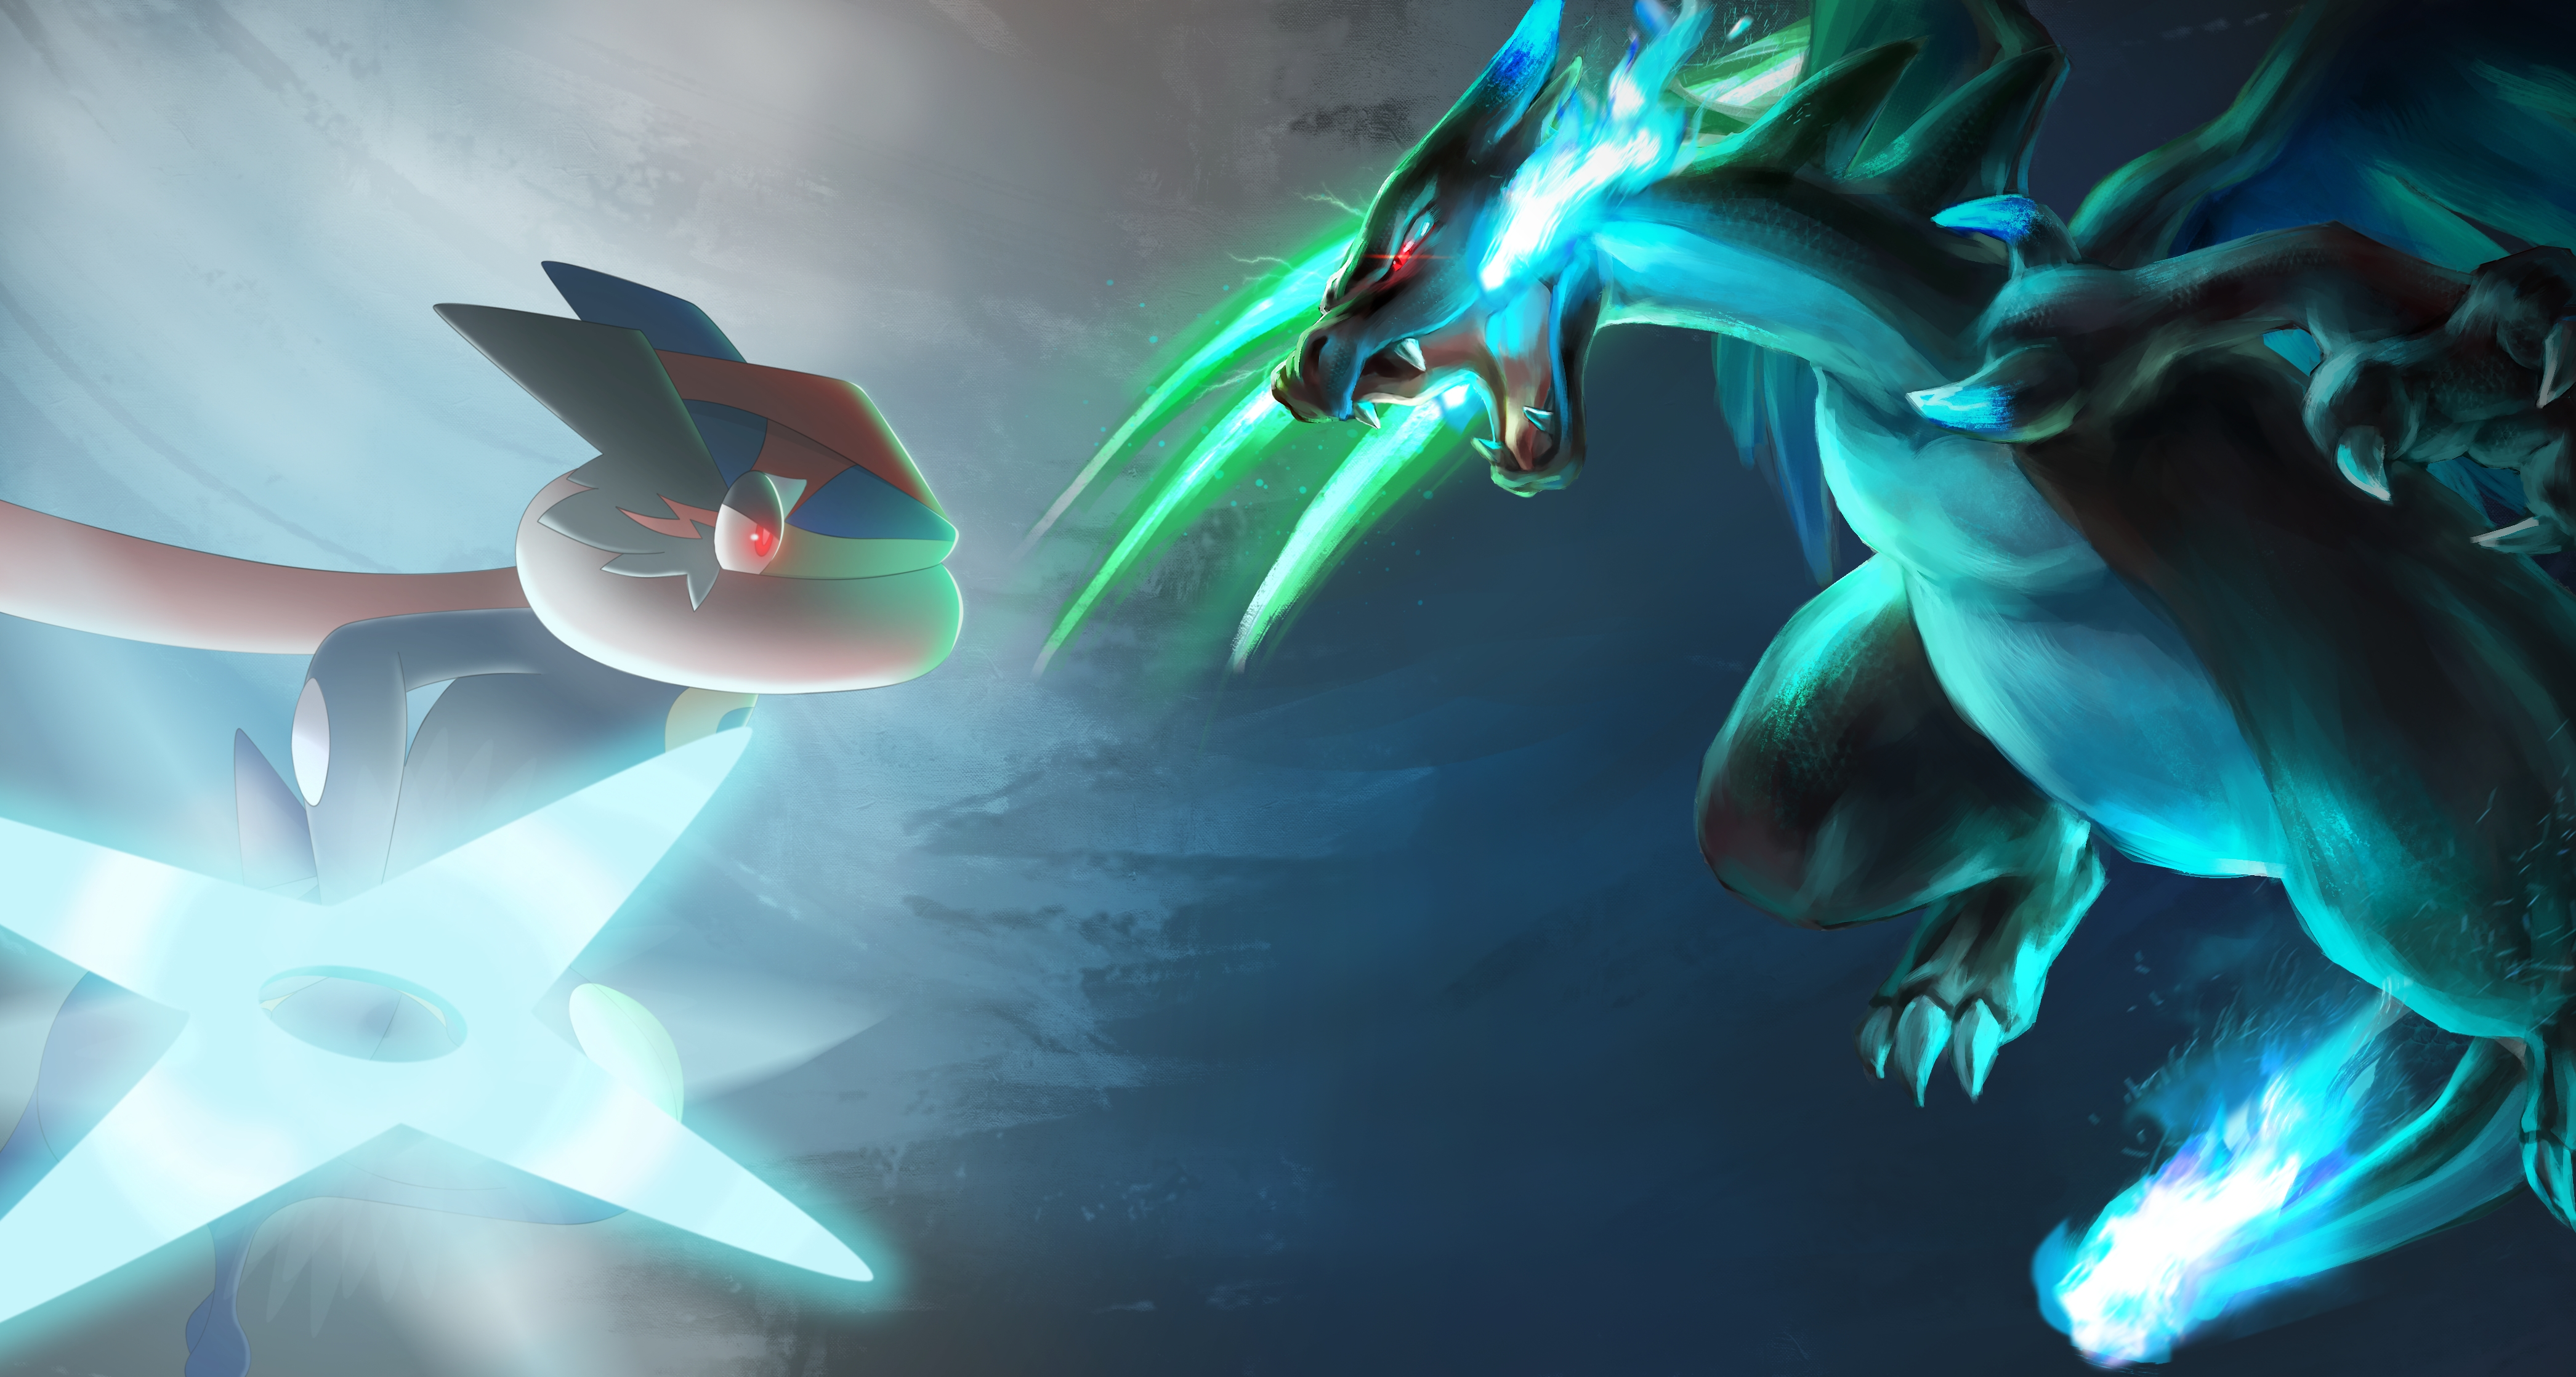 ash-greninja vs mega charizard x 4k ultra hd wallpaper and